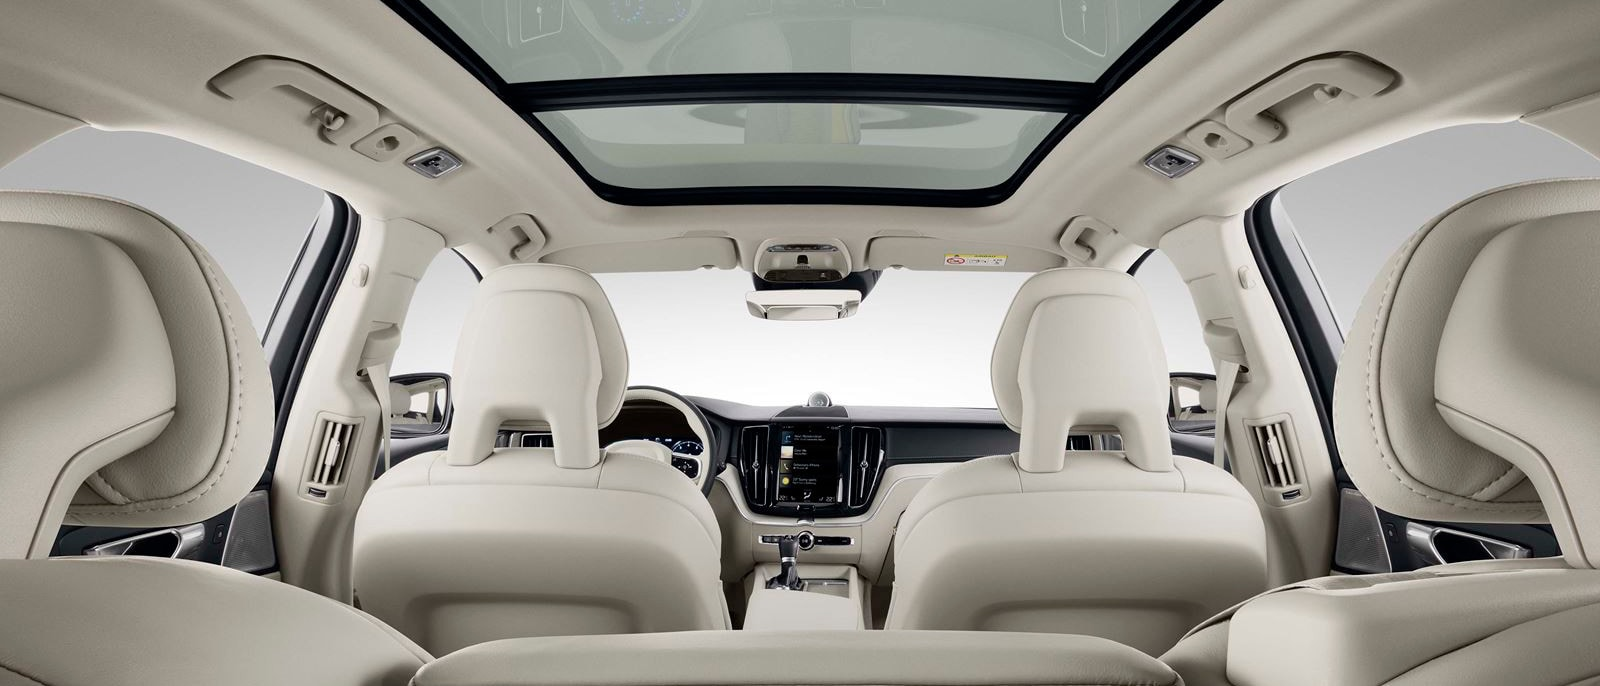 2018 Volvo XC60 Interior Features | Patrick Volvo